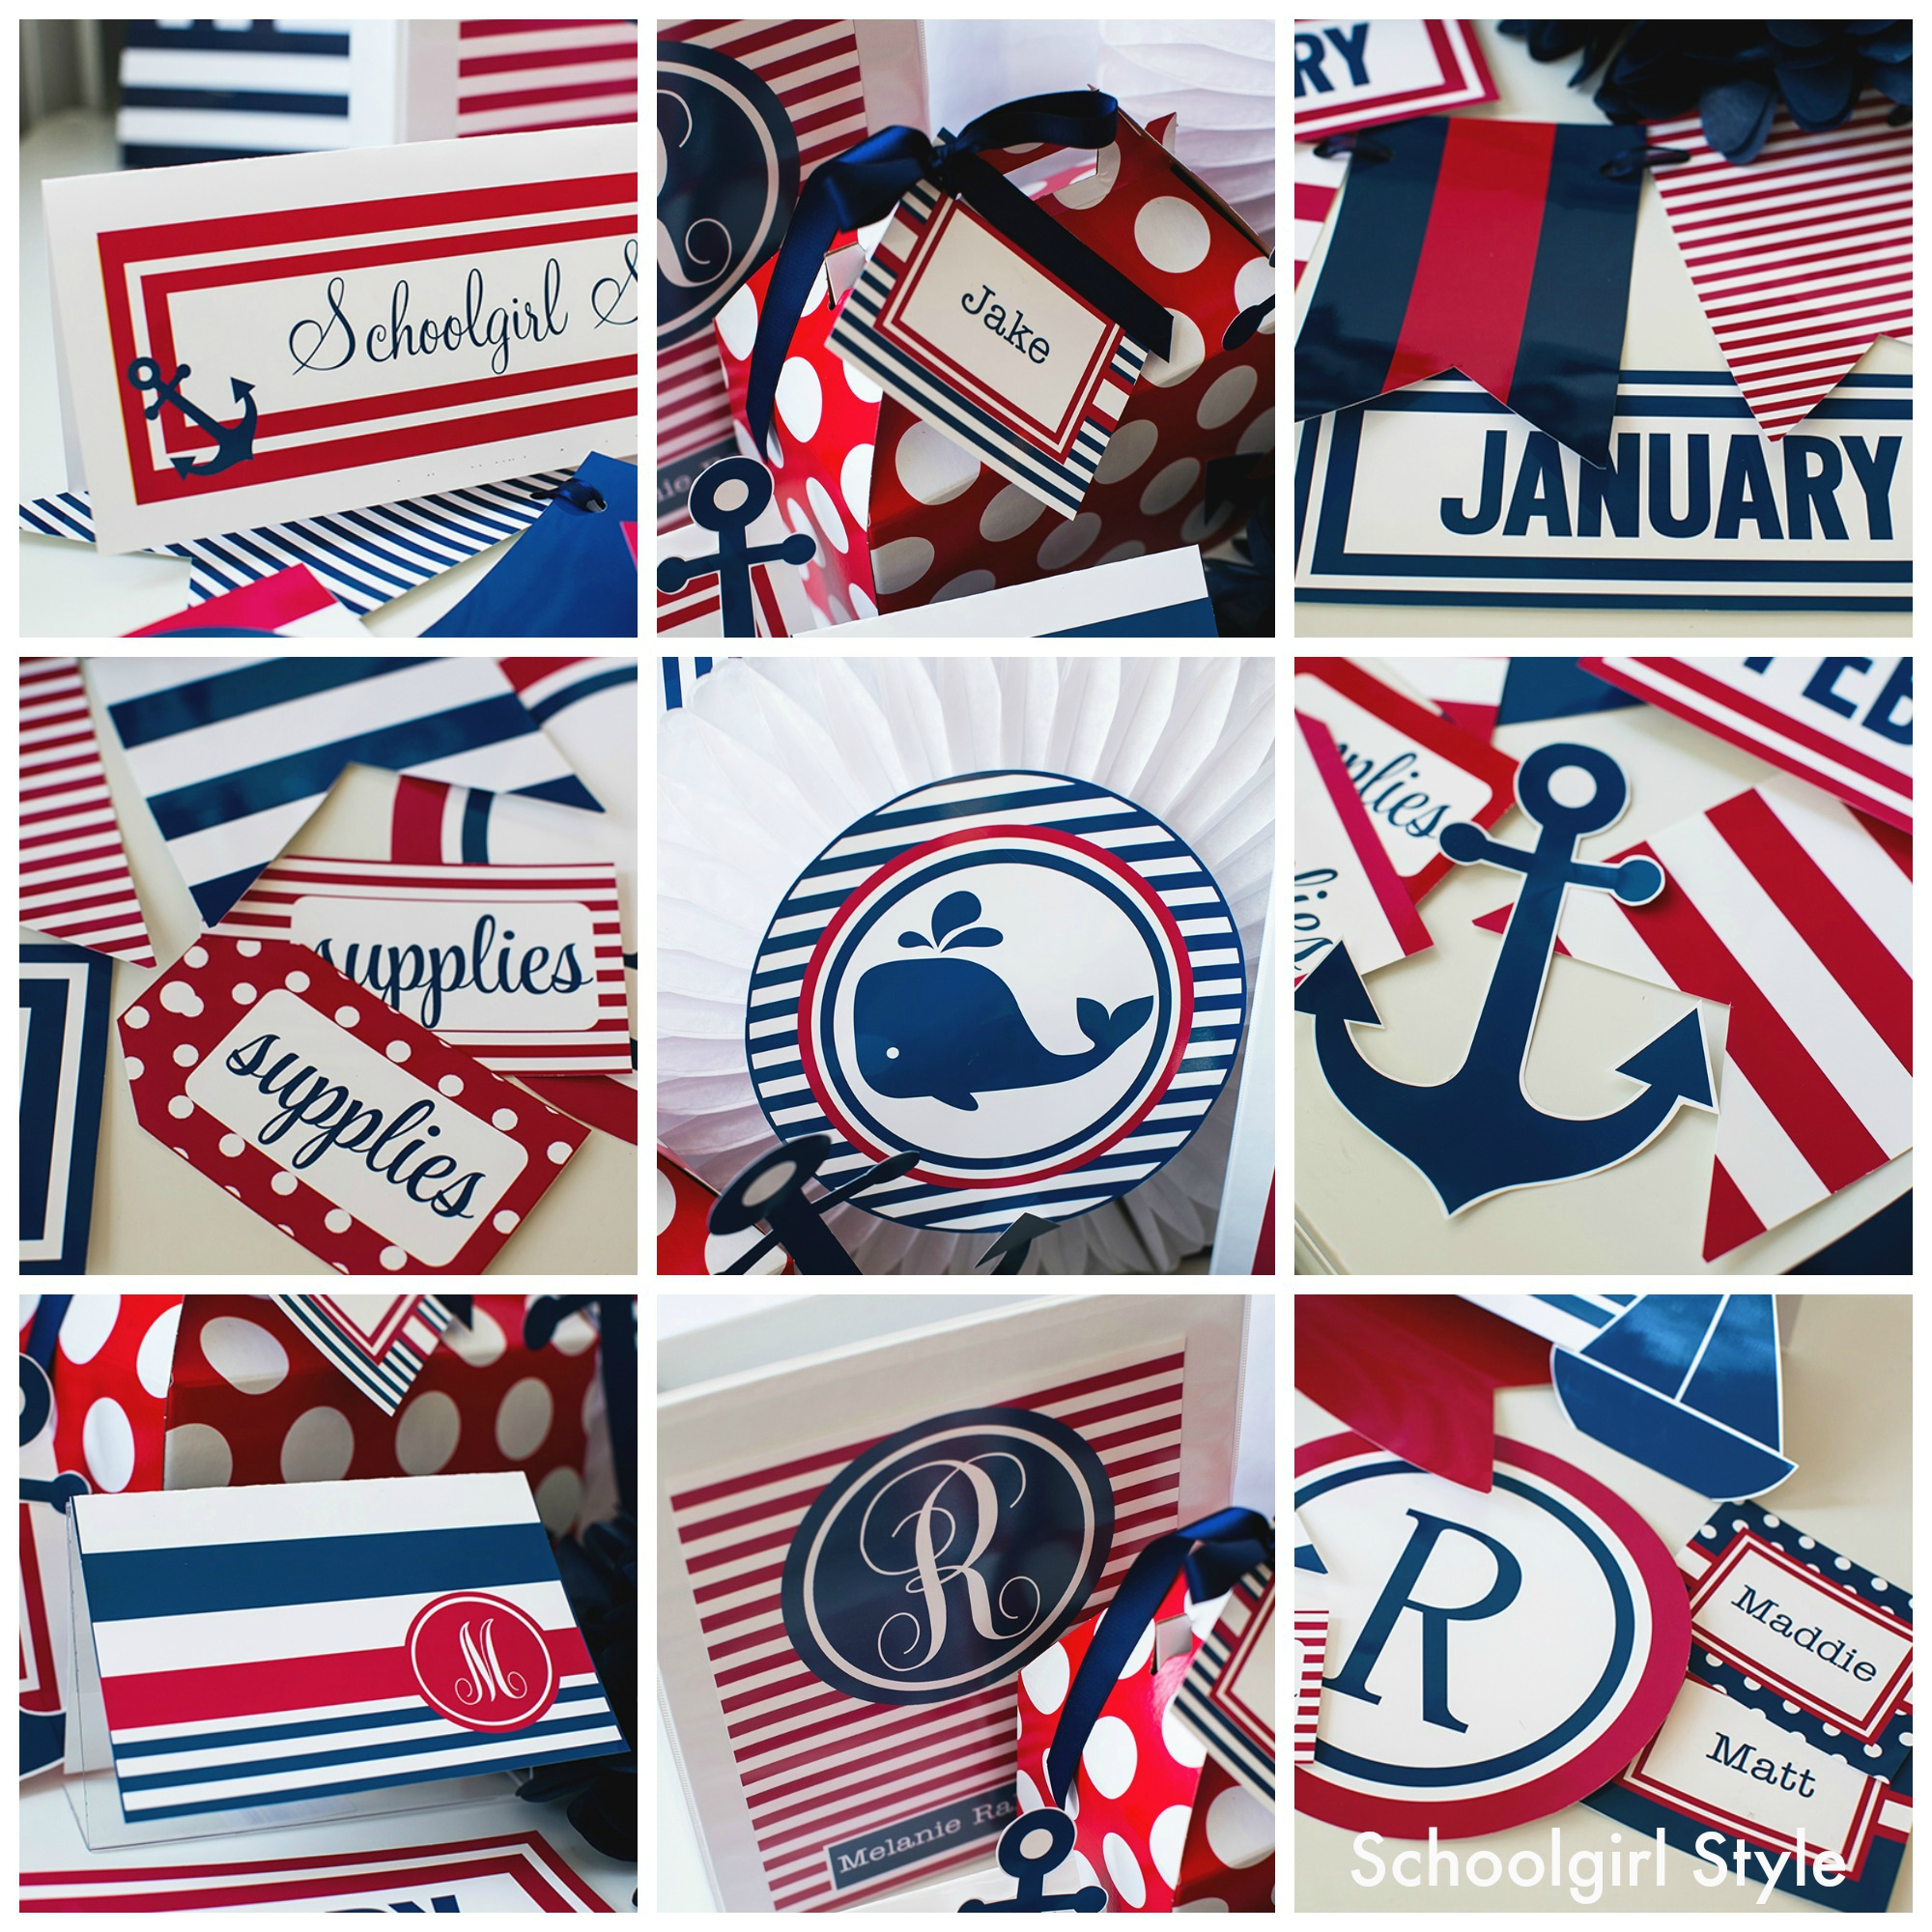 red white blue preppy nautical sailing americana classroom theme decor by Schoolgirl Style